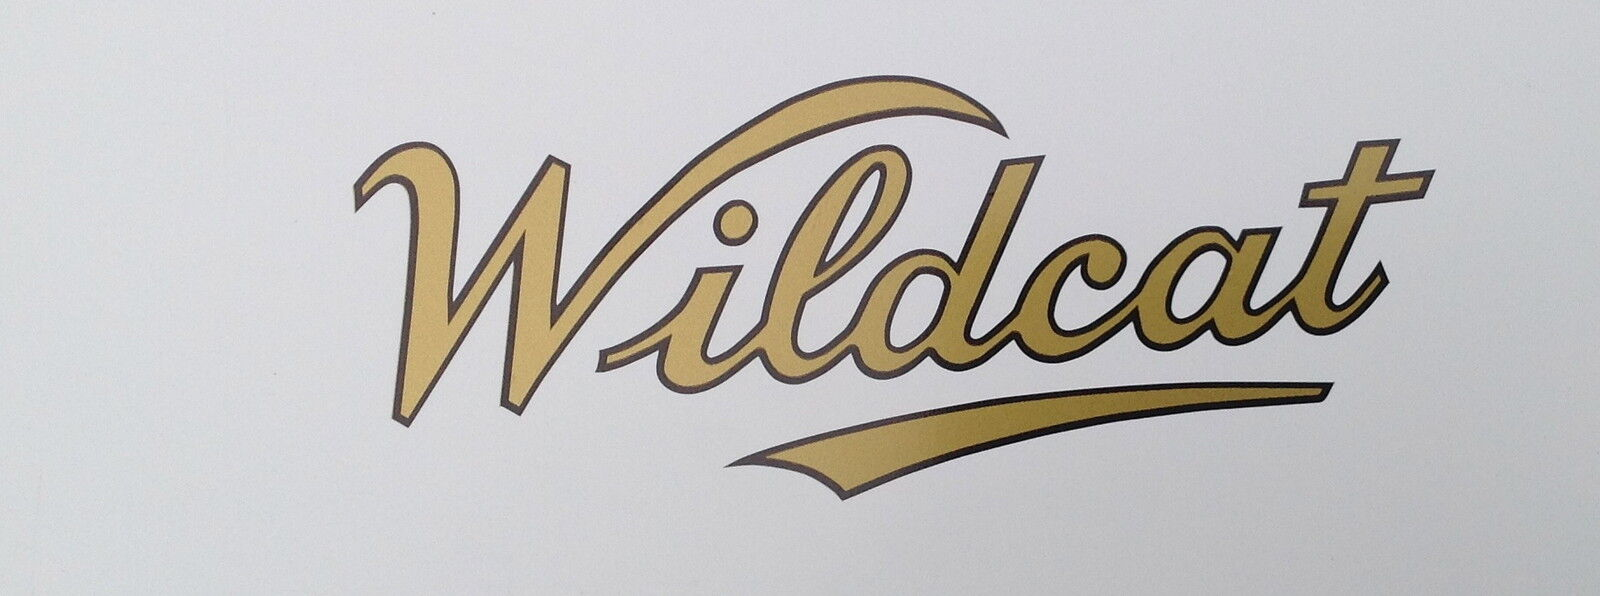 Wildcat Scooters Ltd